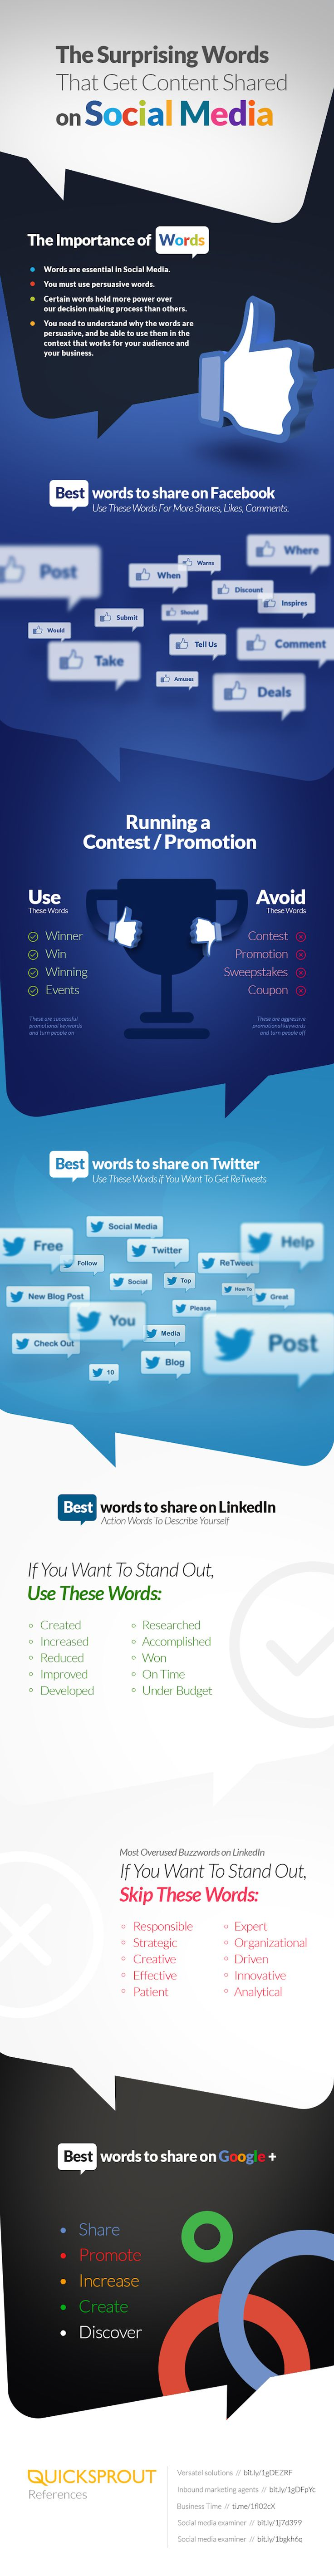 6 Ways To Boost Your Social Media Campaign Using Power Words - #infographic Strange how we all react like Pavlov's dogs.....interesting!